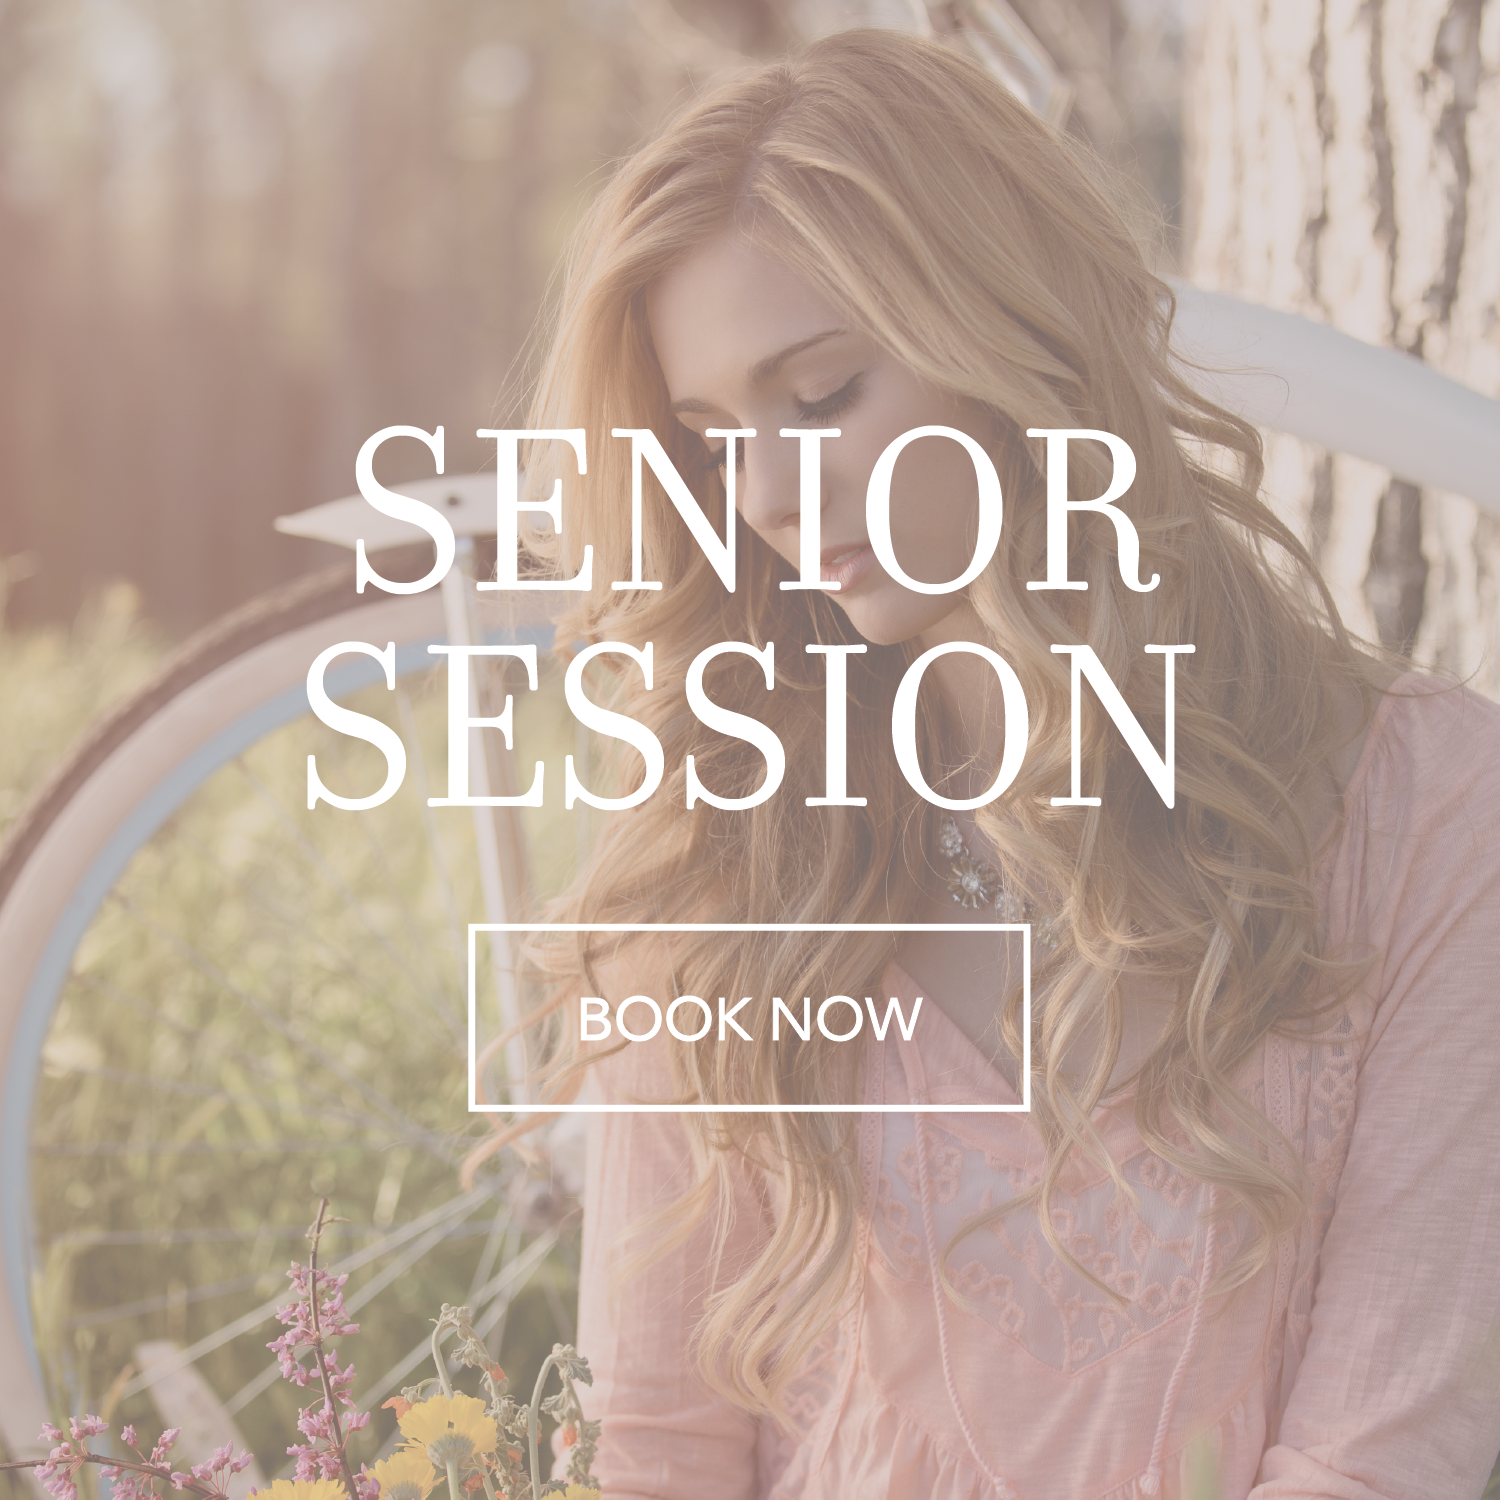 Senior Session Book Now